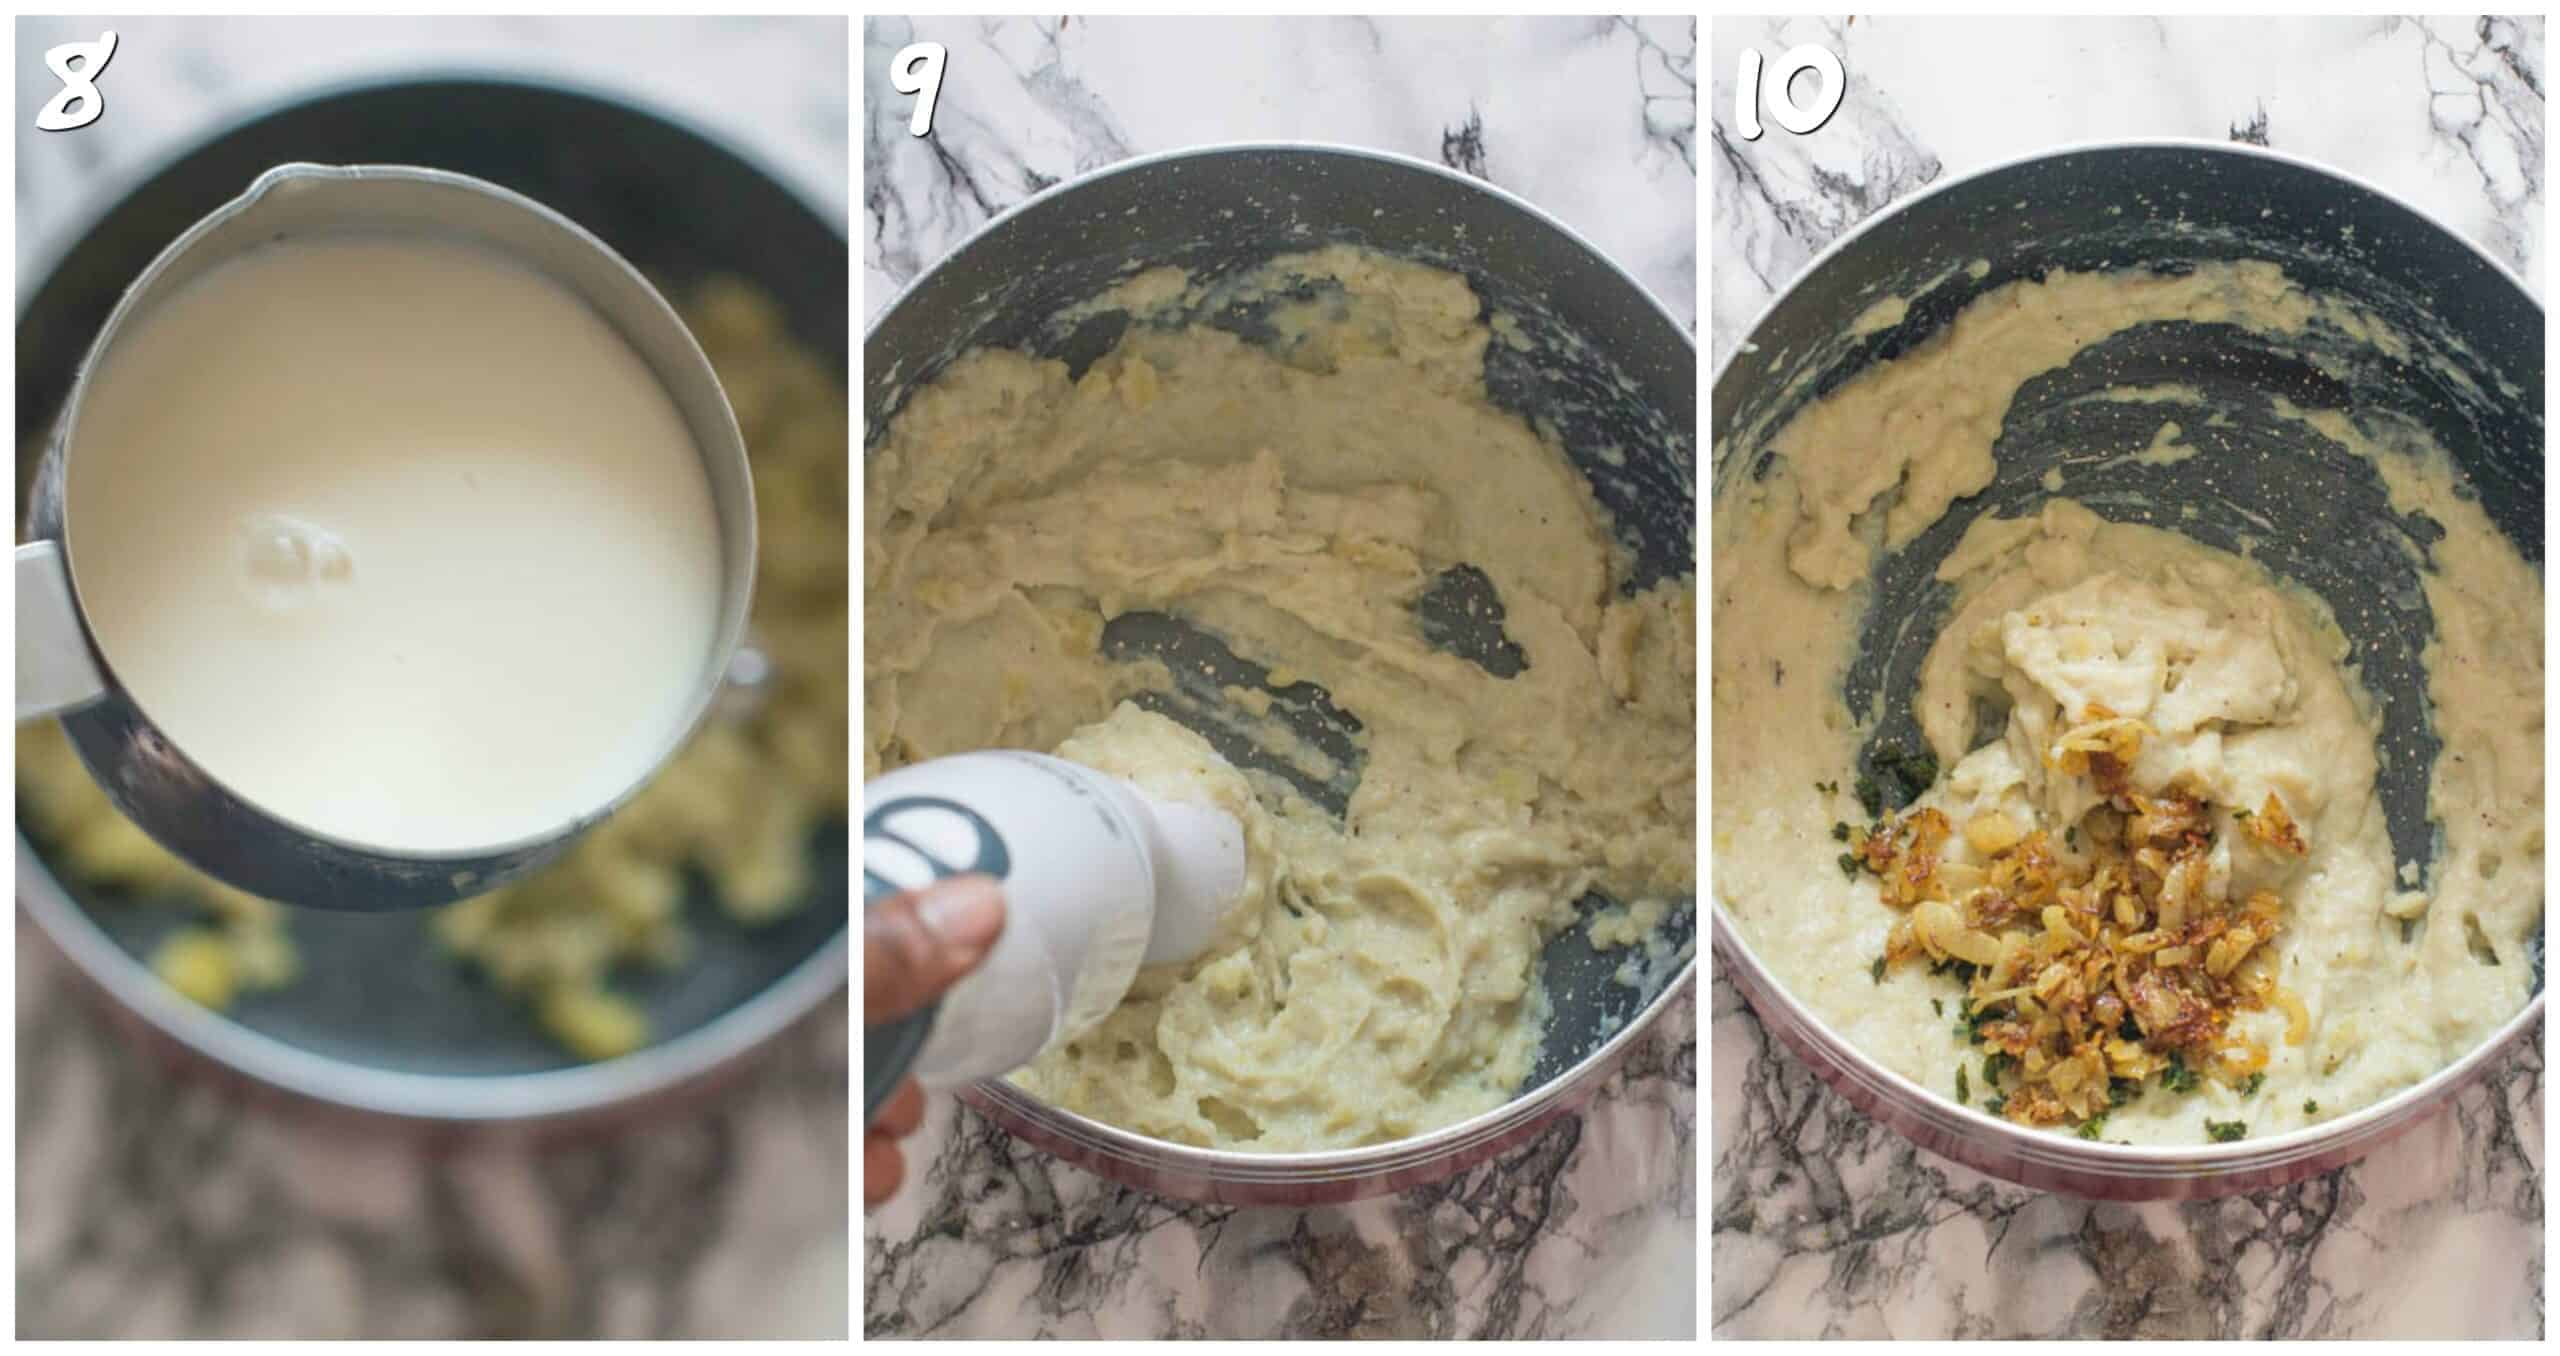 steps 8-10 mashing bananas and mixing with onions